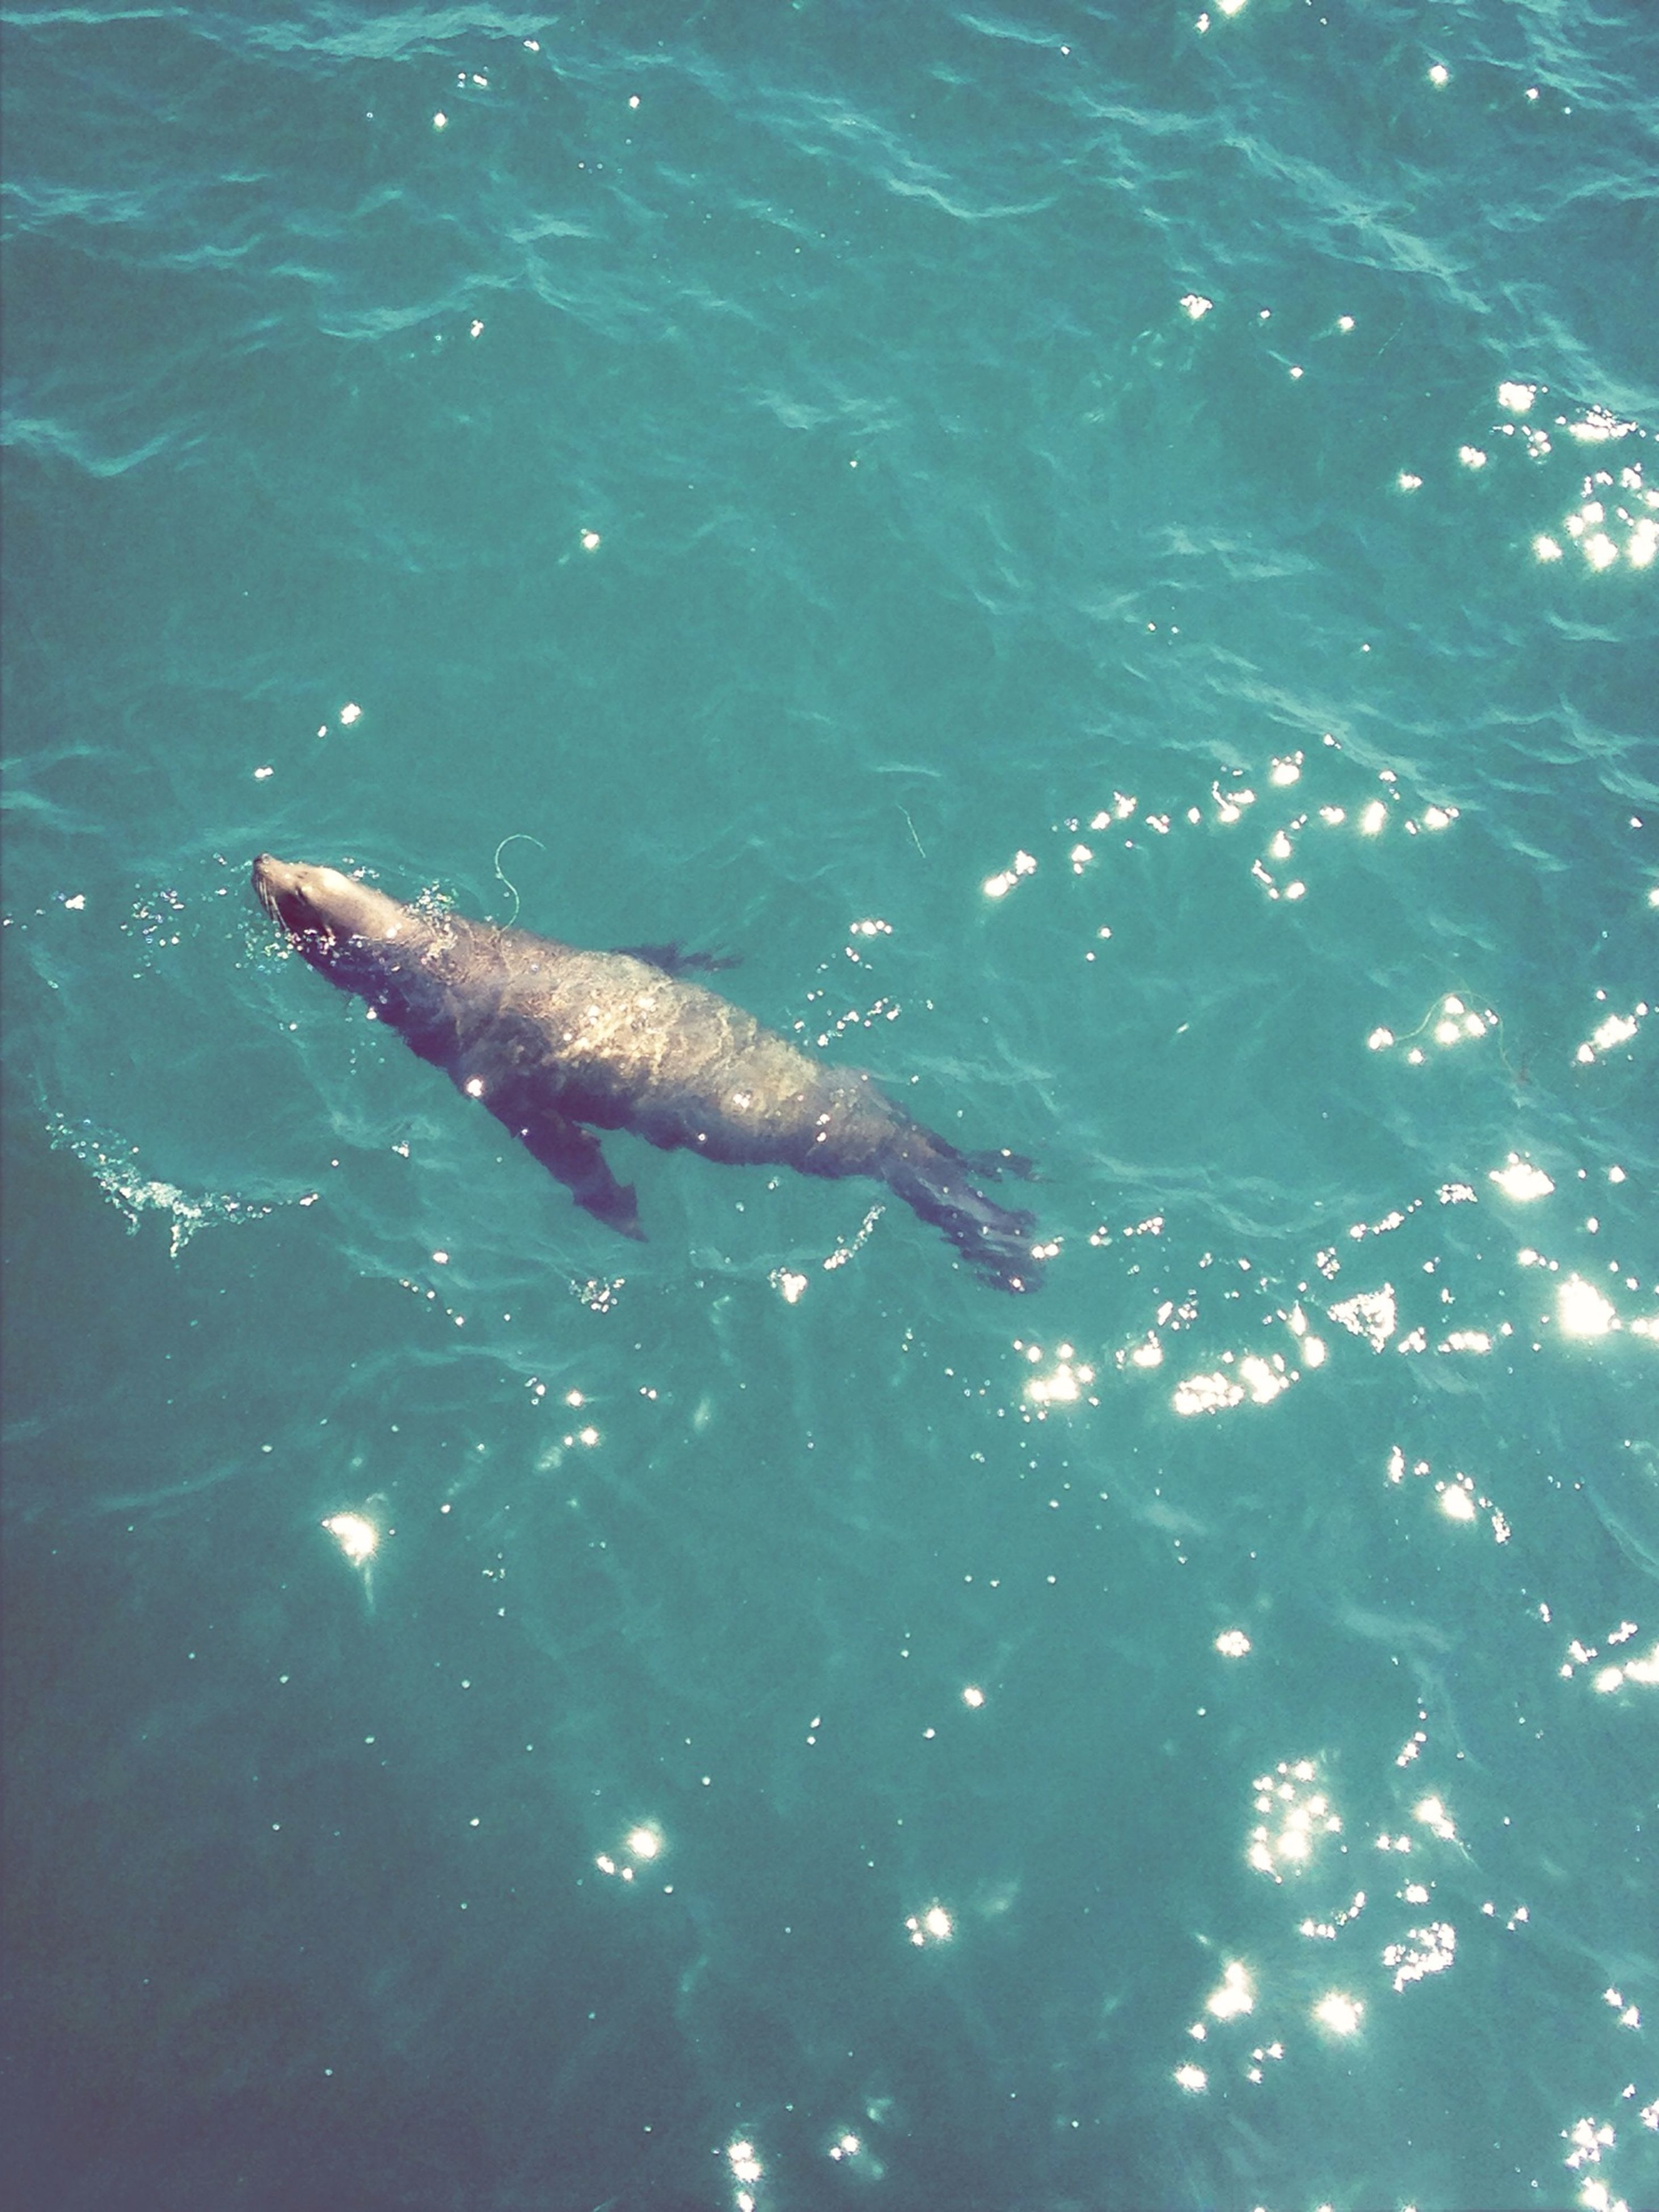 animal themes, water, animals in the wild, one animal, wildlife, sea, sea life, swimming, underwater, fish, undersea, nature, blue, high angle view, beauty in nature, waterfront, no people, outdoors, reptile, day